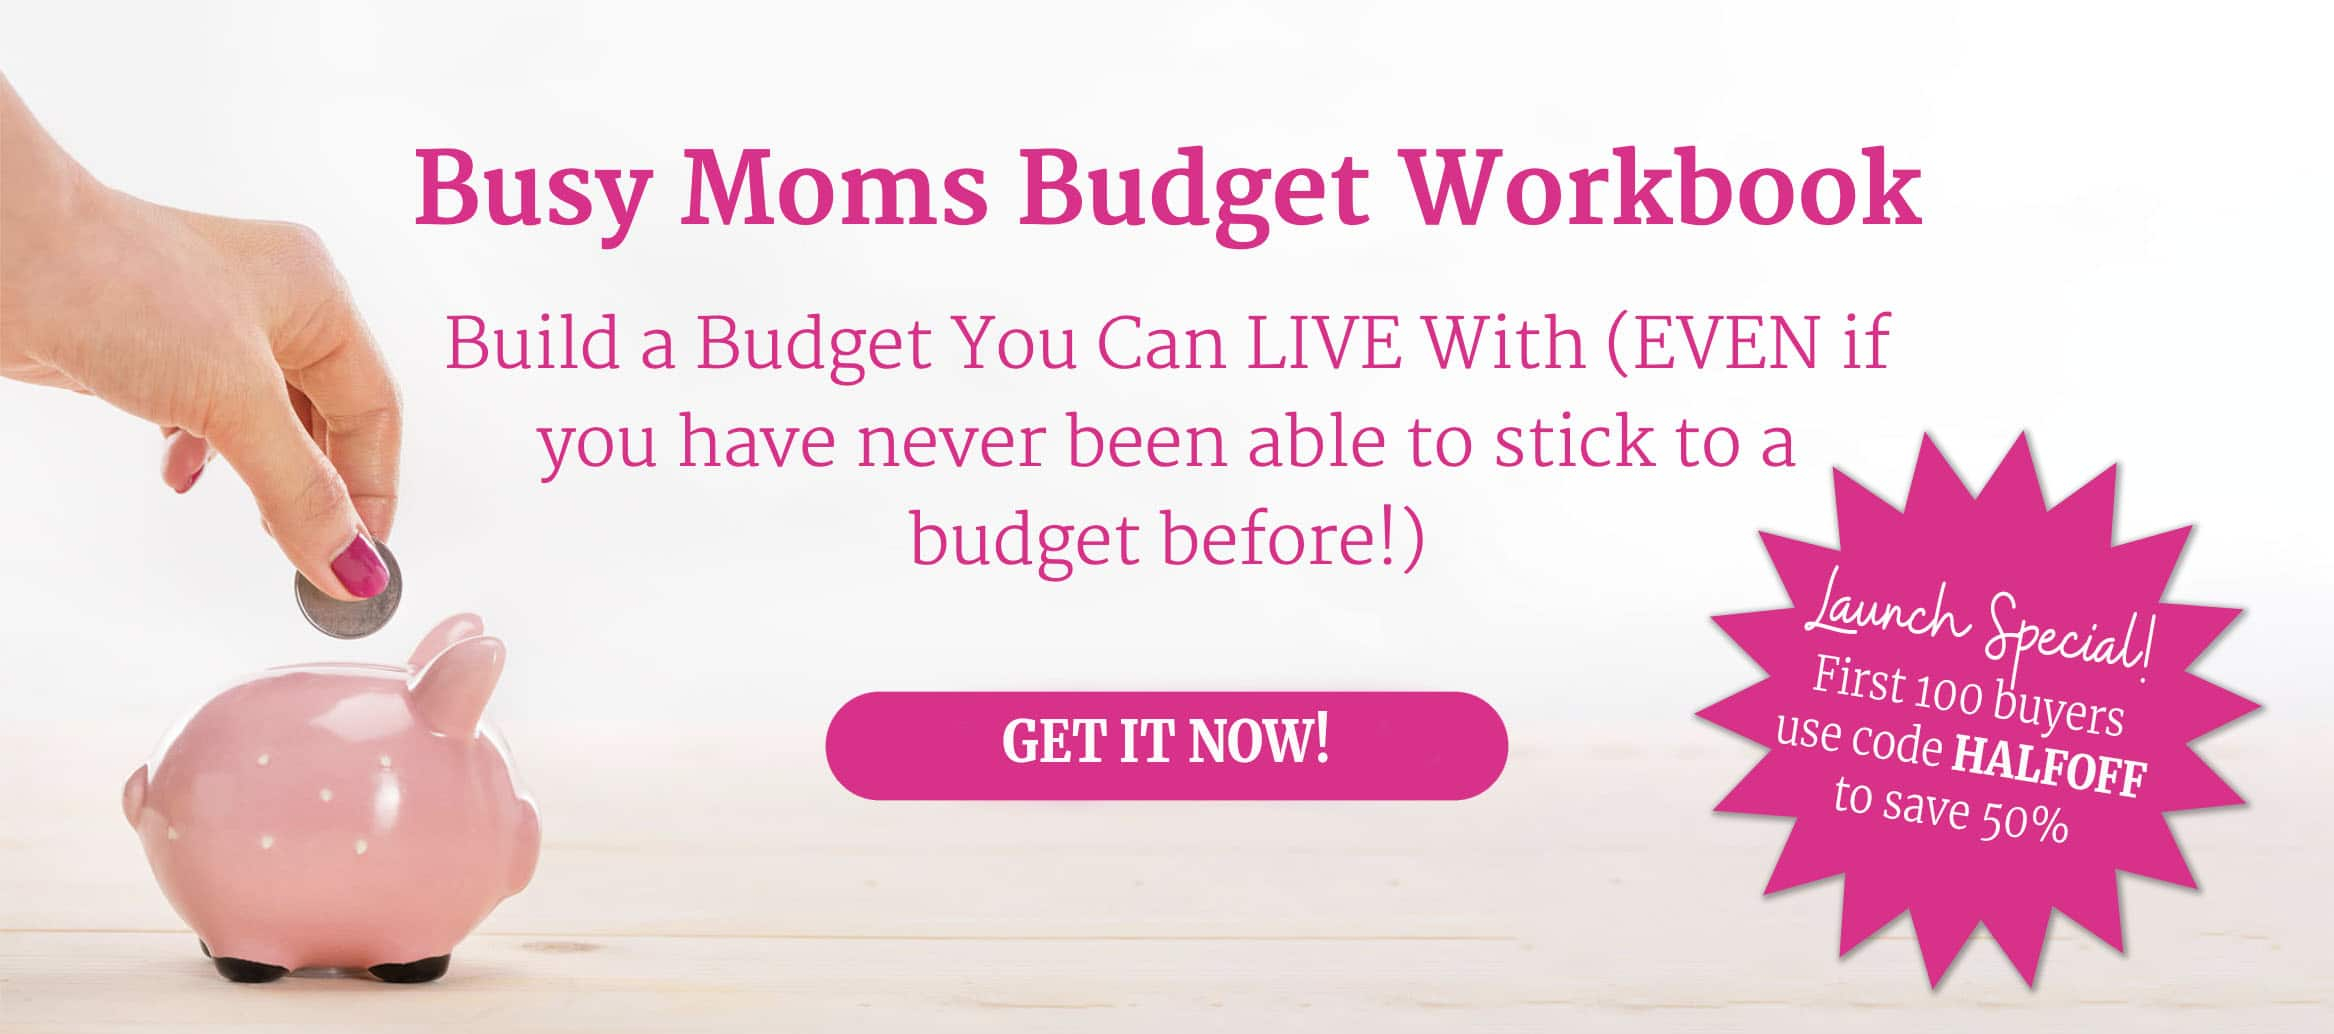 Busy Moms Budget Blog Banner